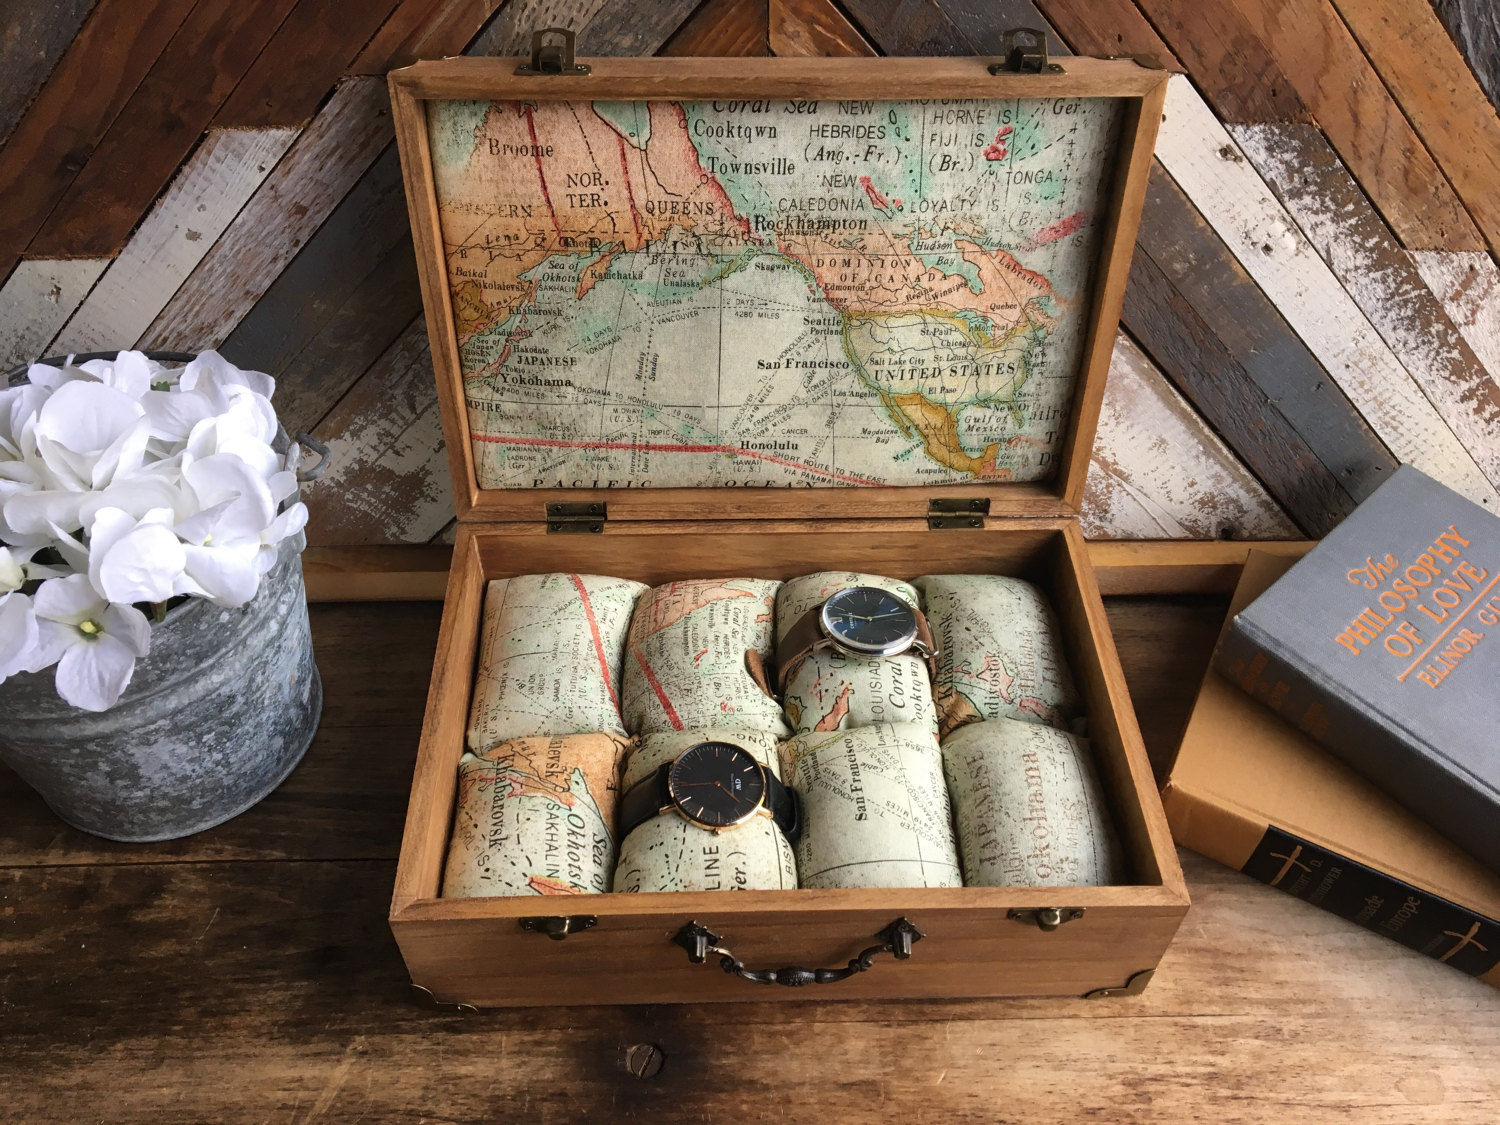 In a box, are placed eight little pillows imprinted with the map of the world. You can set there the watches for a better safety. The design chosen is a creative one for a jewelry watch holder.